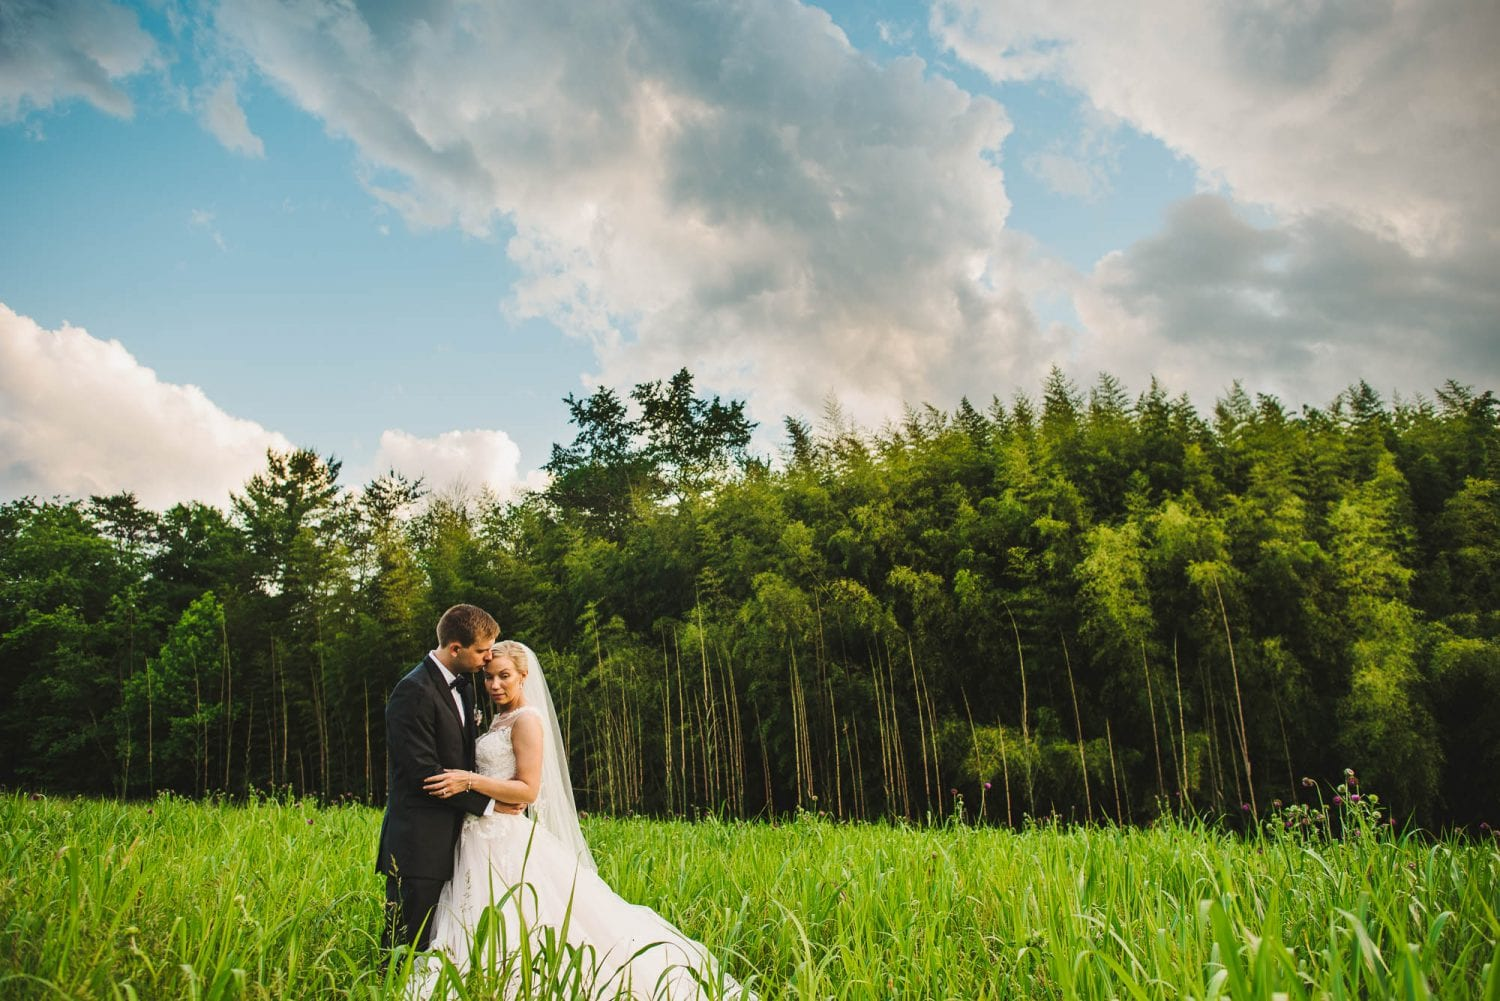 Wedding photography in a field with bamboo